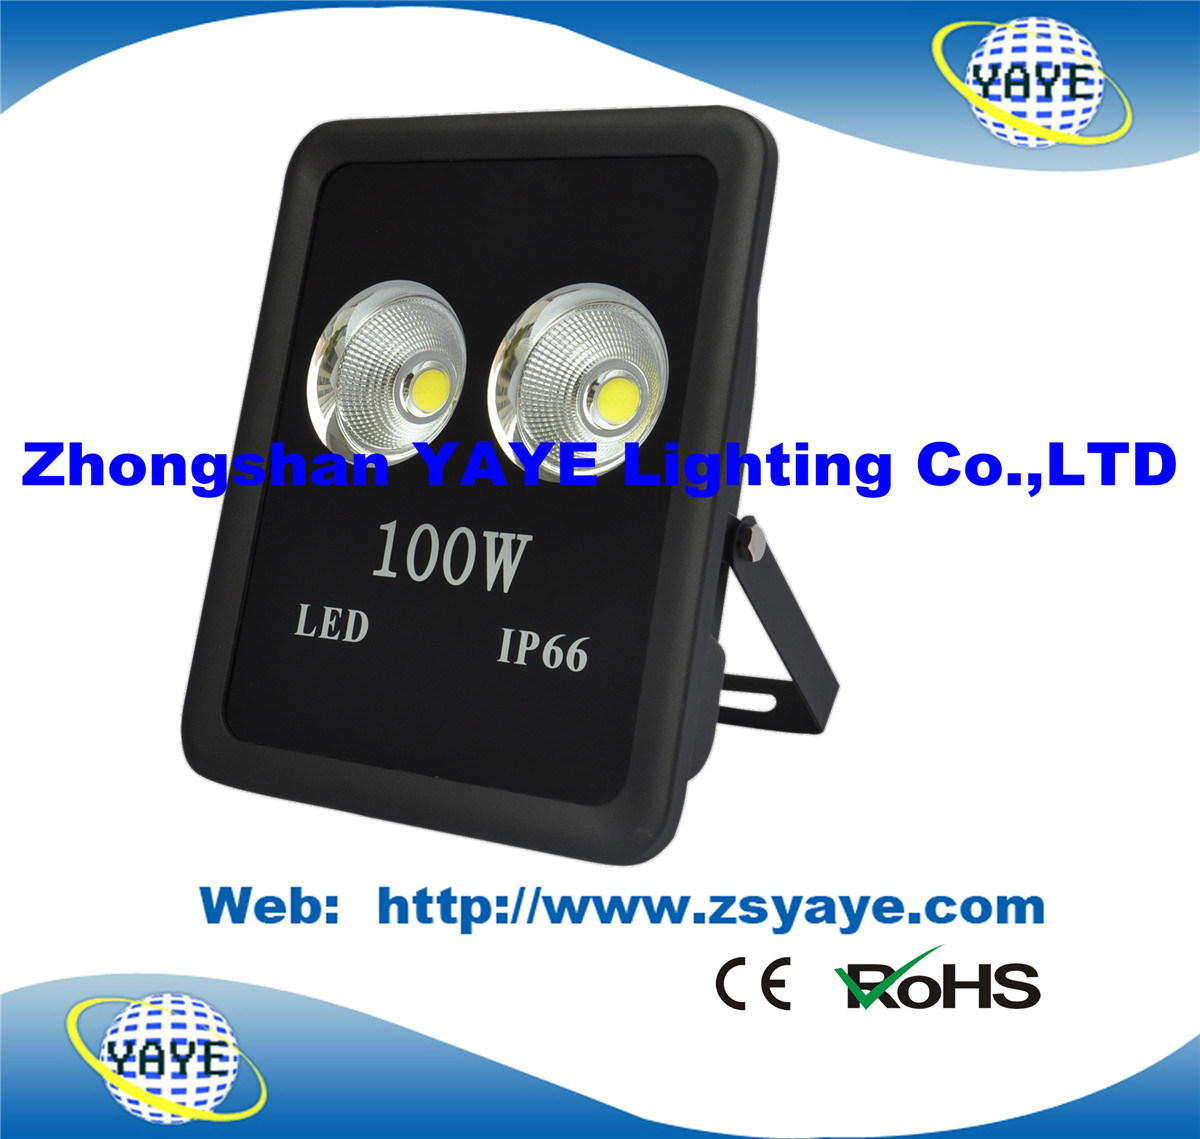 Yaye 18 Hot Sell Ce/RoHS/3 Years Warranty COB 100W LED Floodlight /100W COB LED Tunnel Light